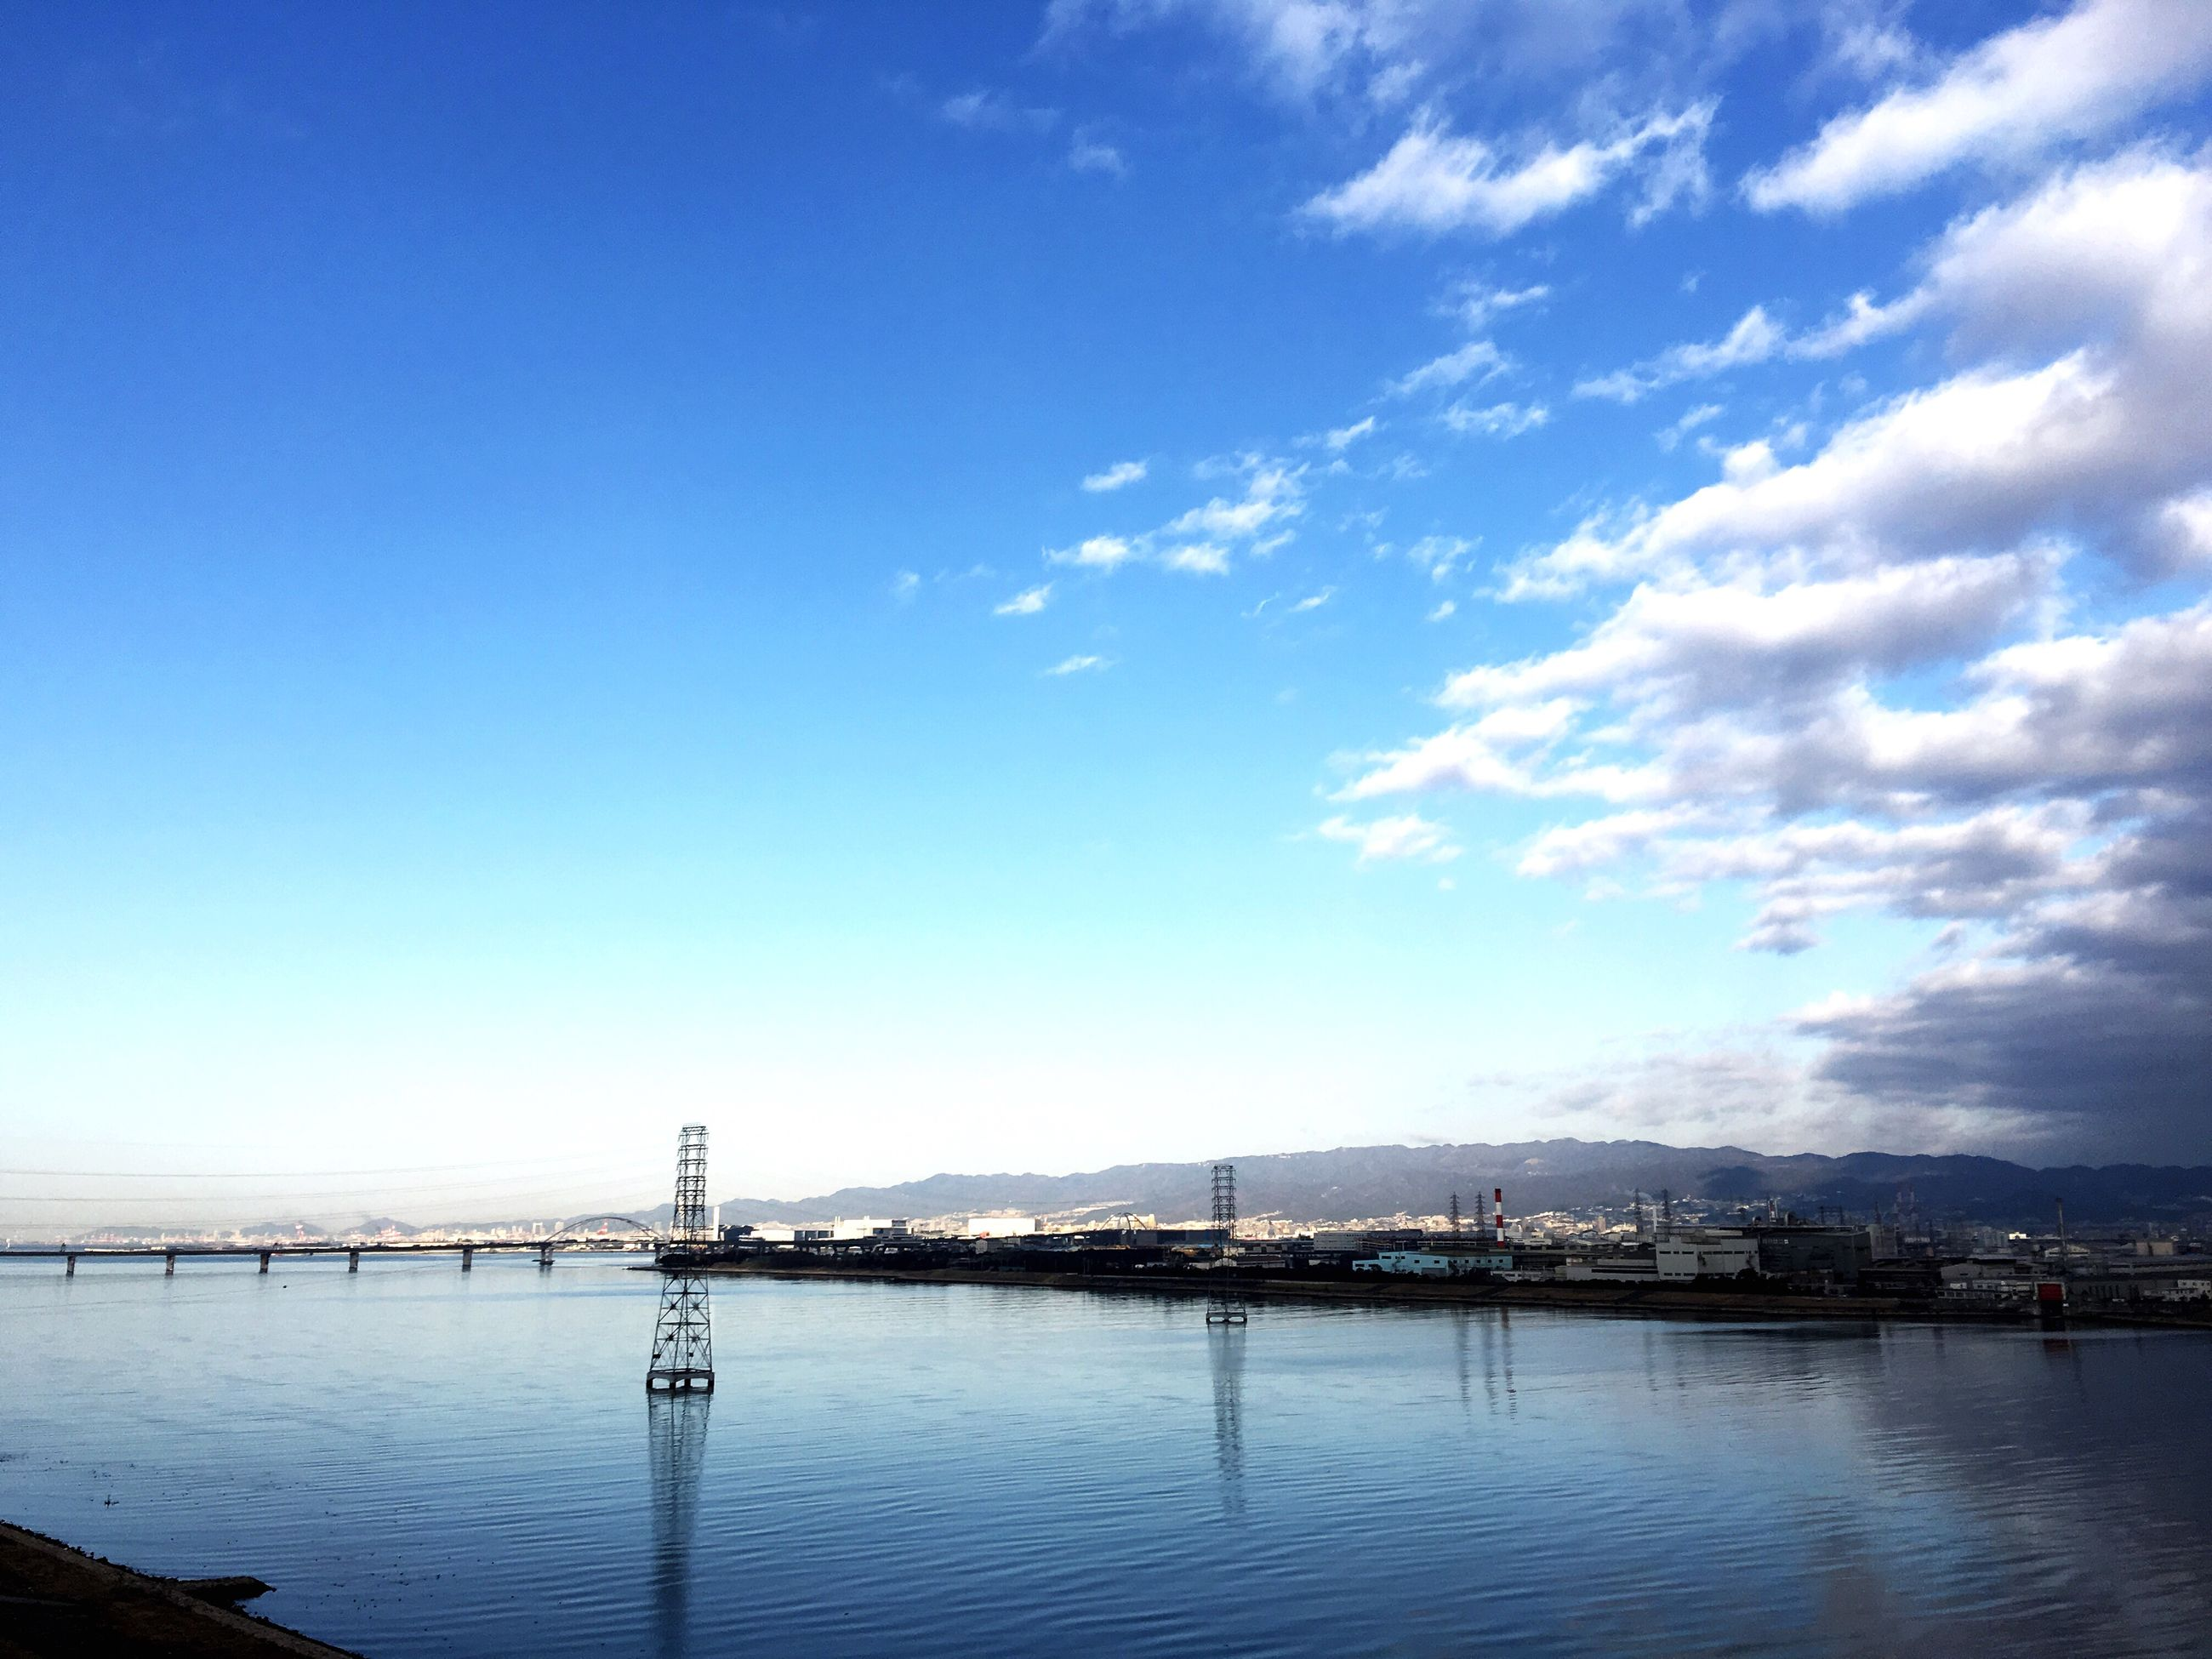 water, sea, sky, waterfront, connection, built structure, blue, architecture, tranquility, tranquil scene, nature, scenics, cloud, river, outdoors, no people, cloud - sky, bridge - man made structure, day, beauty in nature